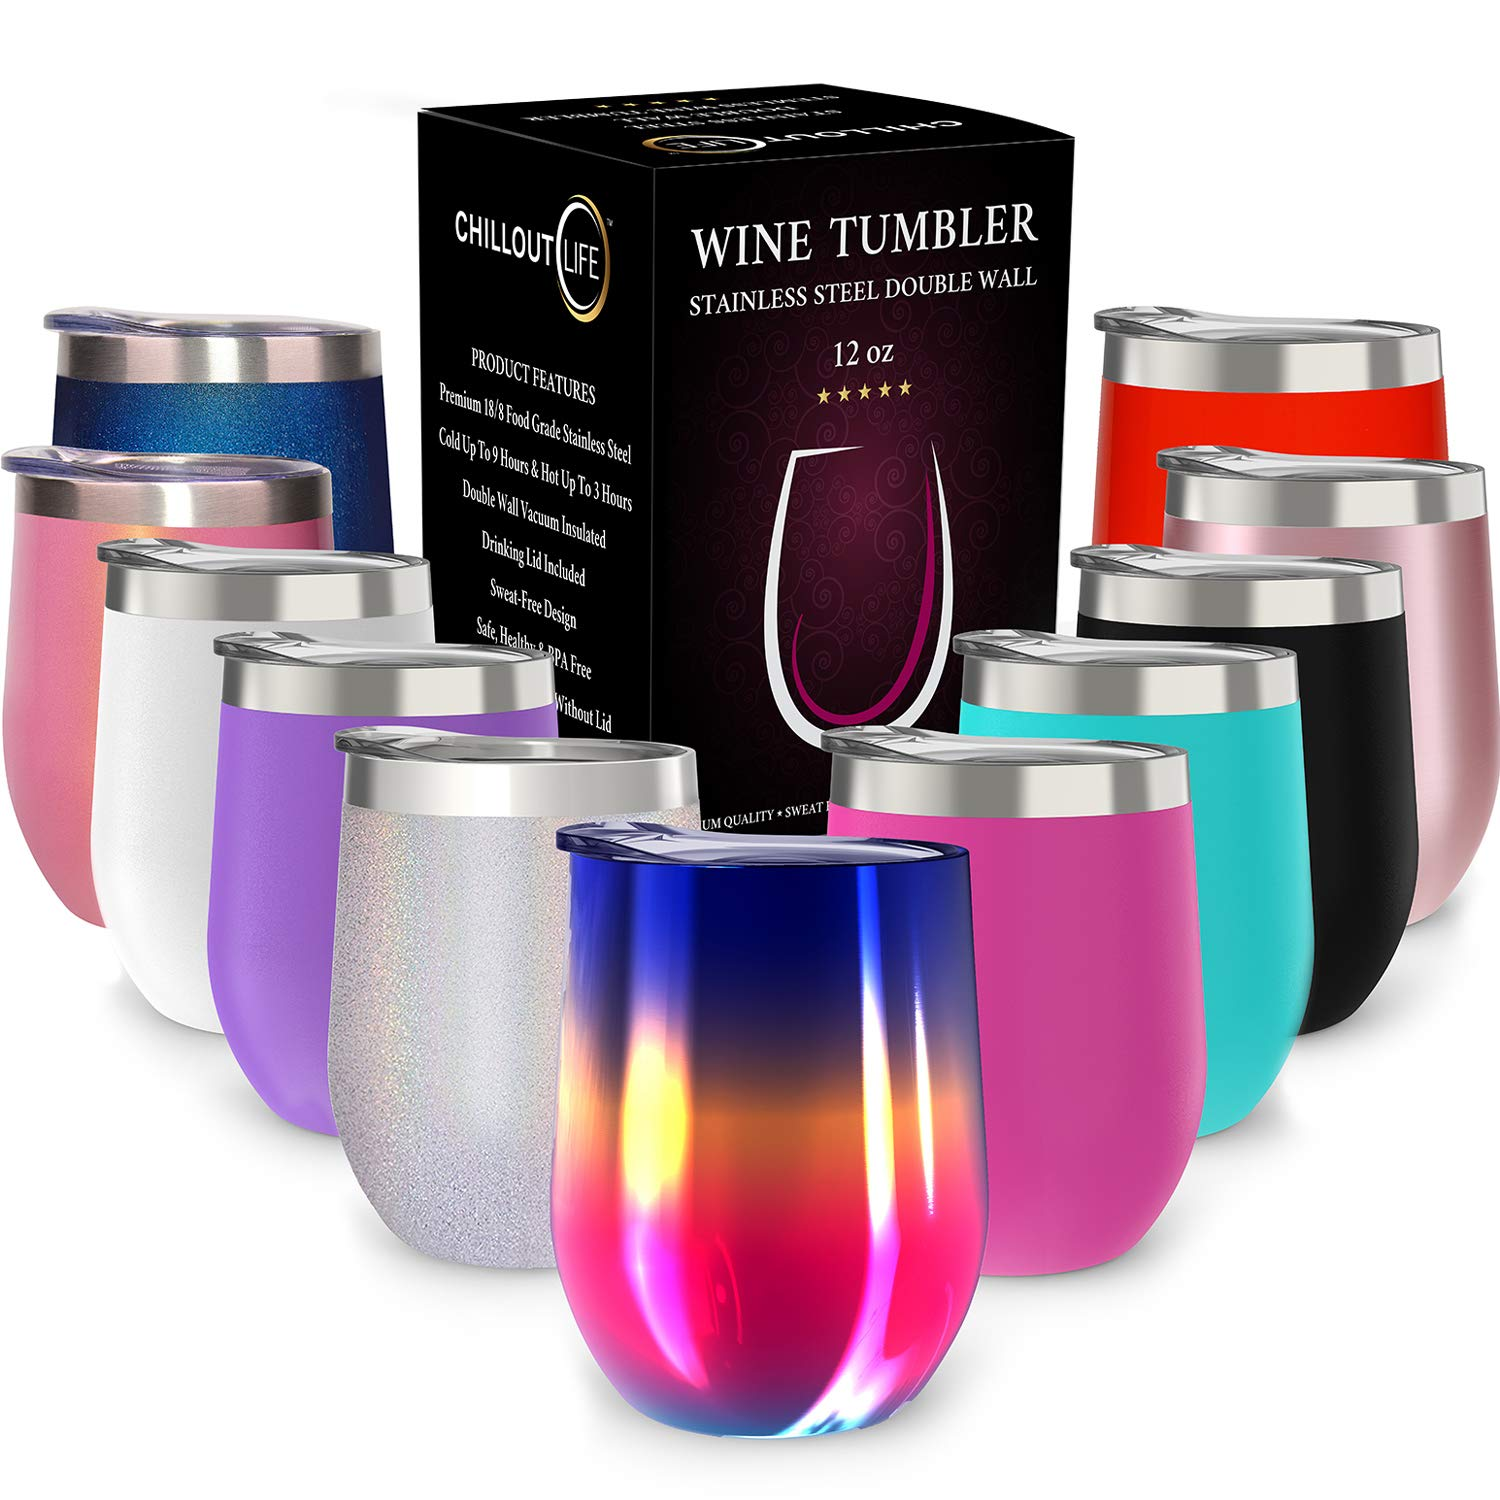 CHILLOUT LIFE 12 oz Stainless Steel Tumbler with Lid & Gift Box   Wine Tumbler Double Wall Vacuum Insulated Travel Tumbler Cup for Coffee, Wine, Cocktails, Ice Cream - Rainbow Wine Tumbler